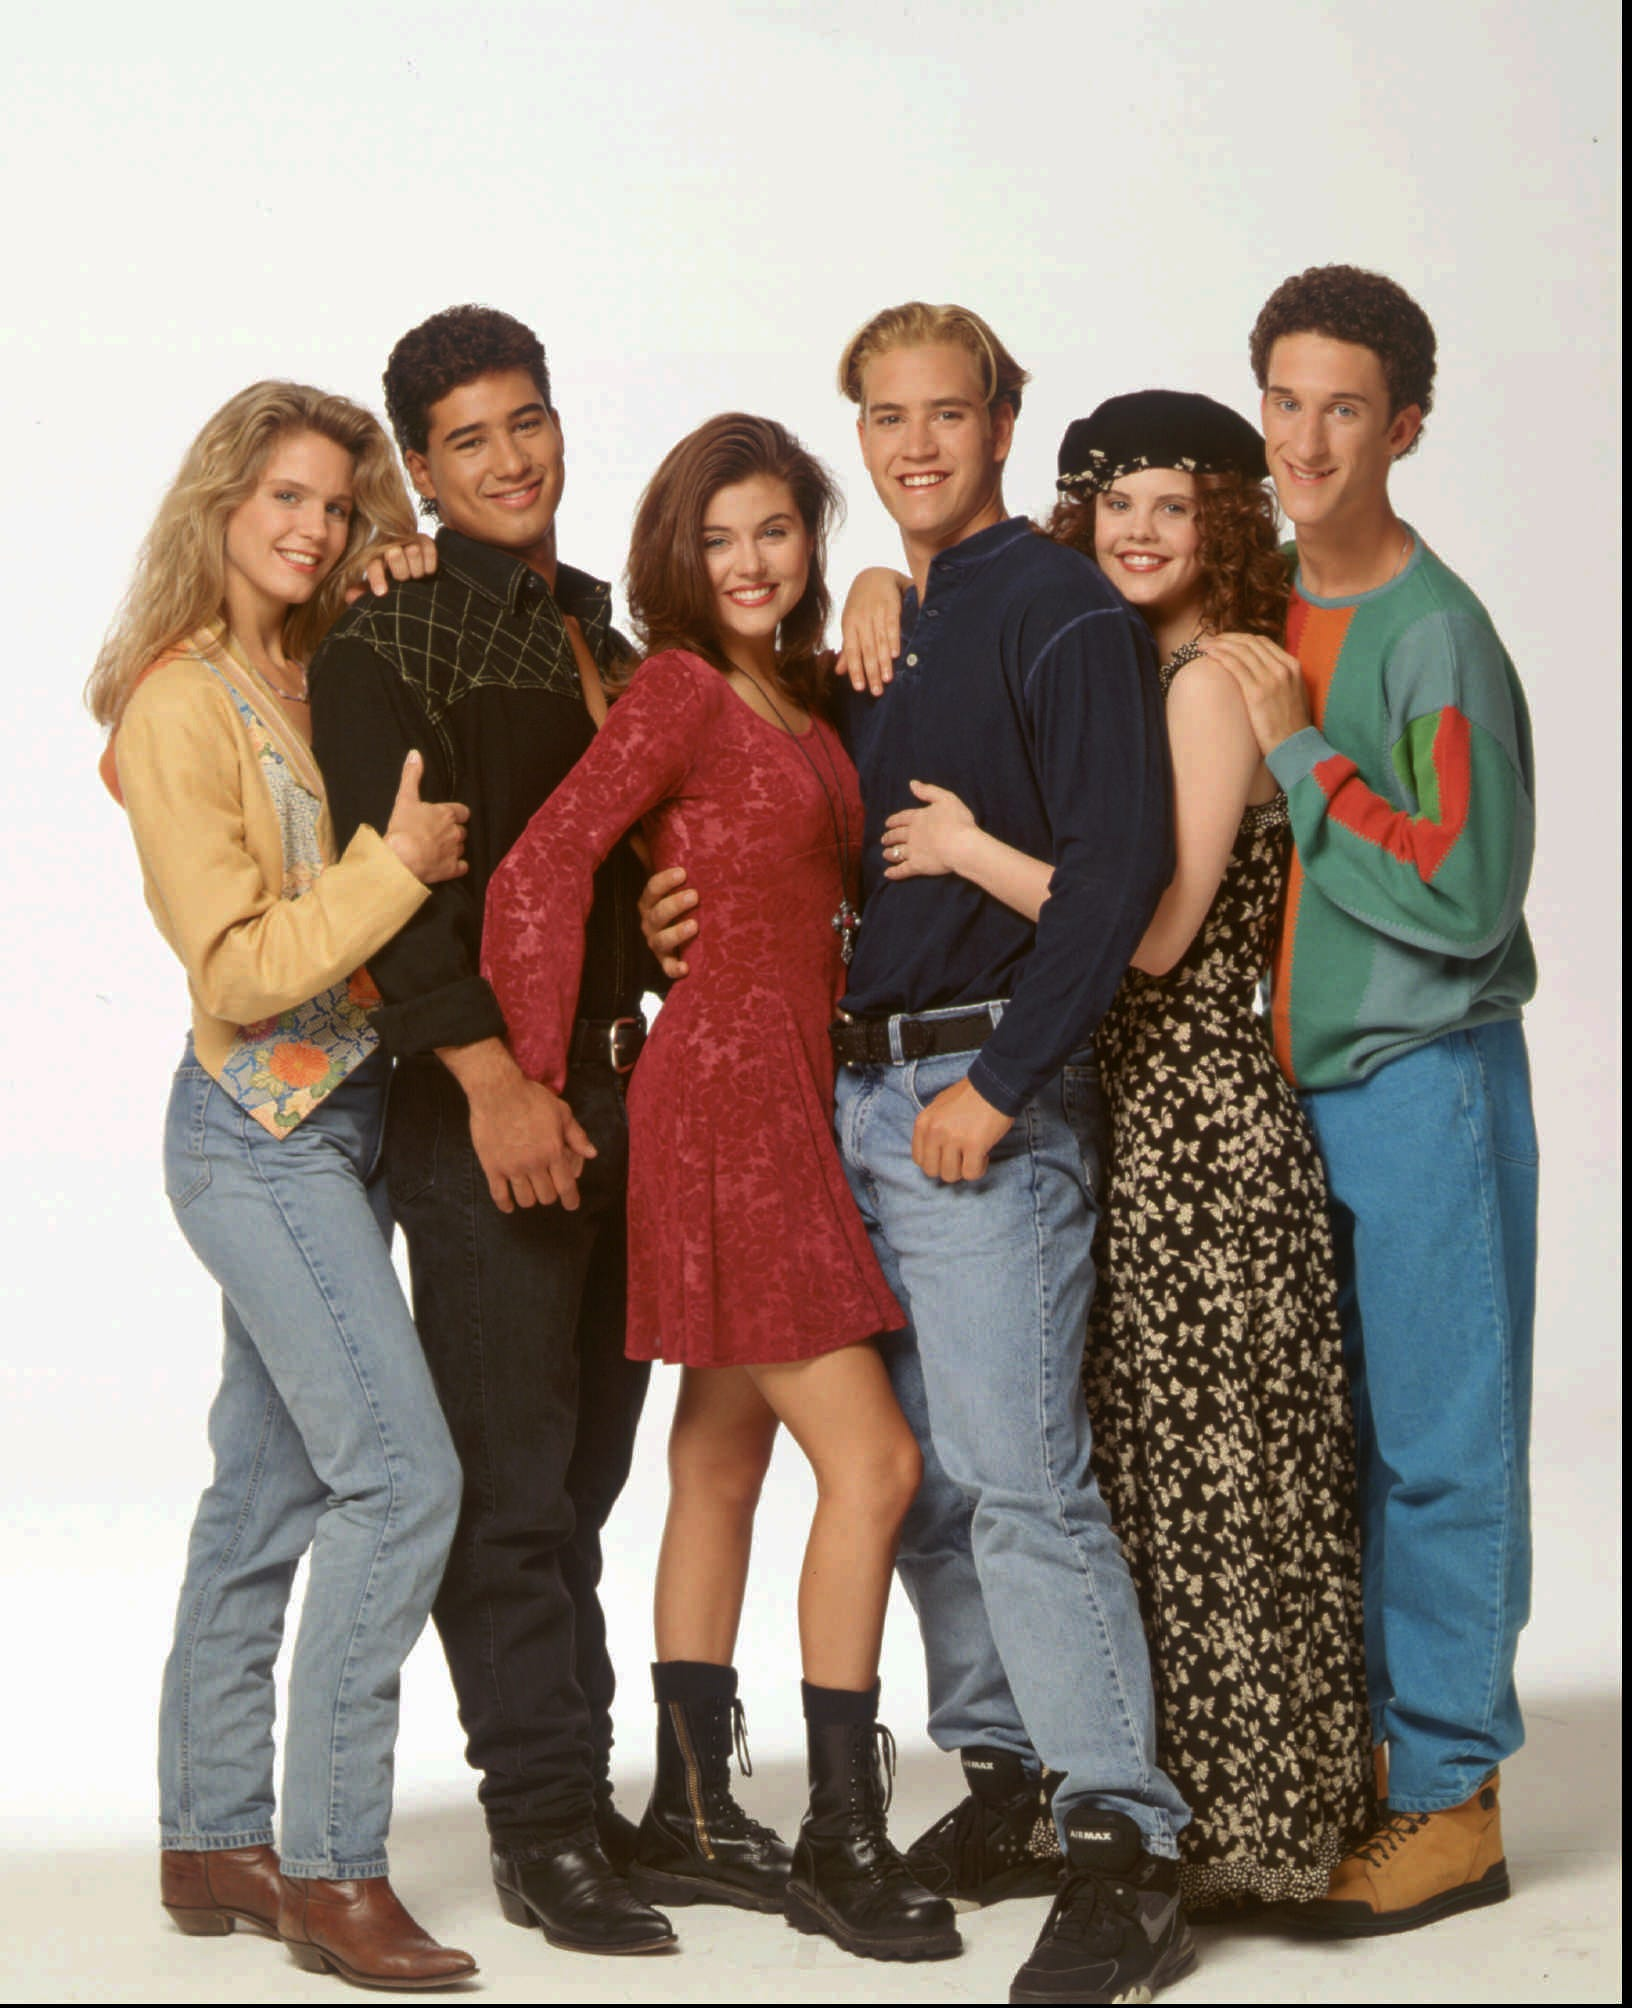 Edgy   Saved by the Bell  reboot will lovingly poke fun at the original: See new trailer